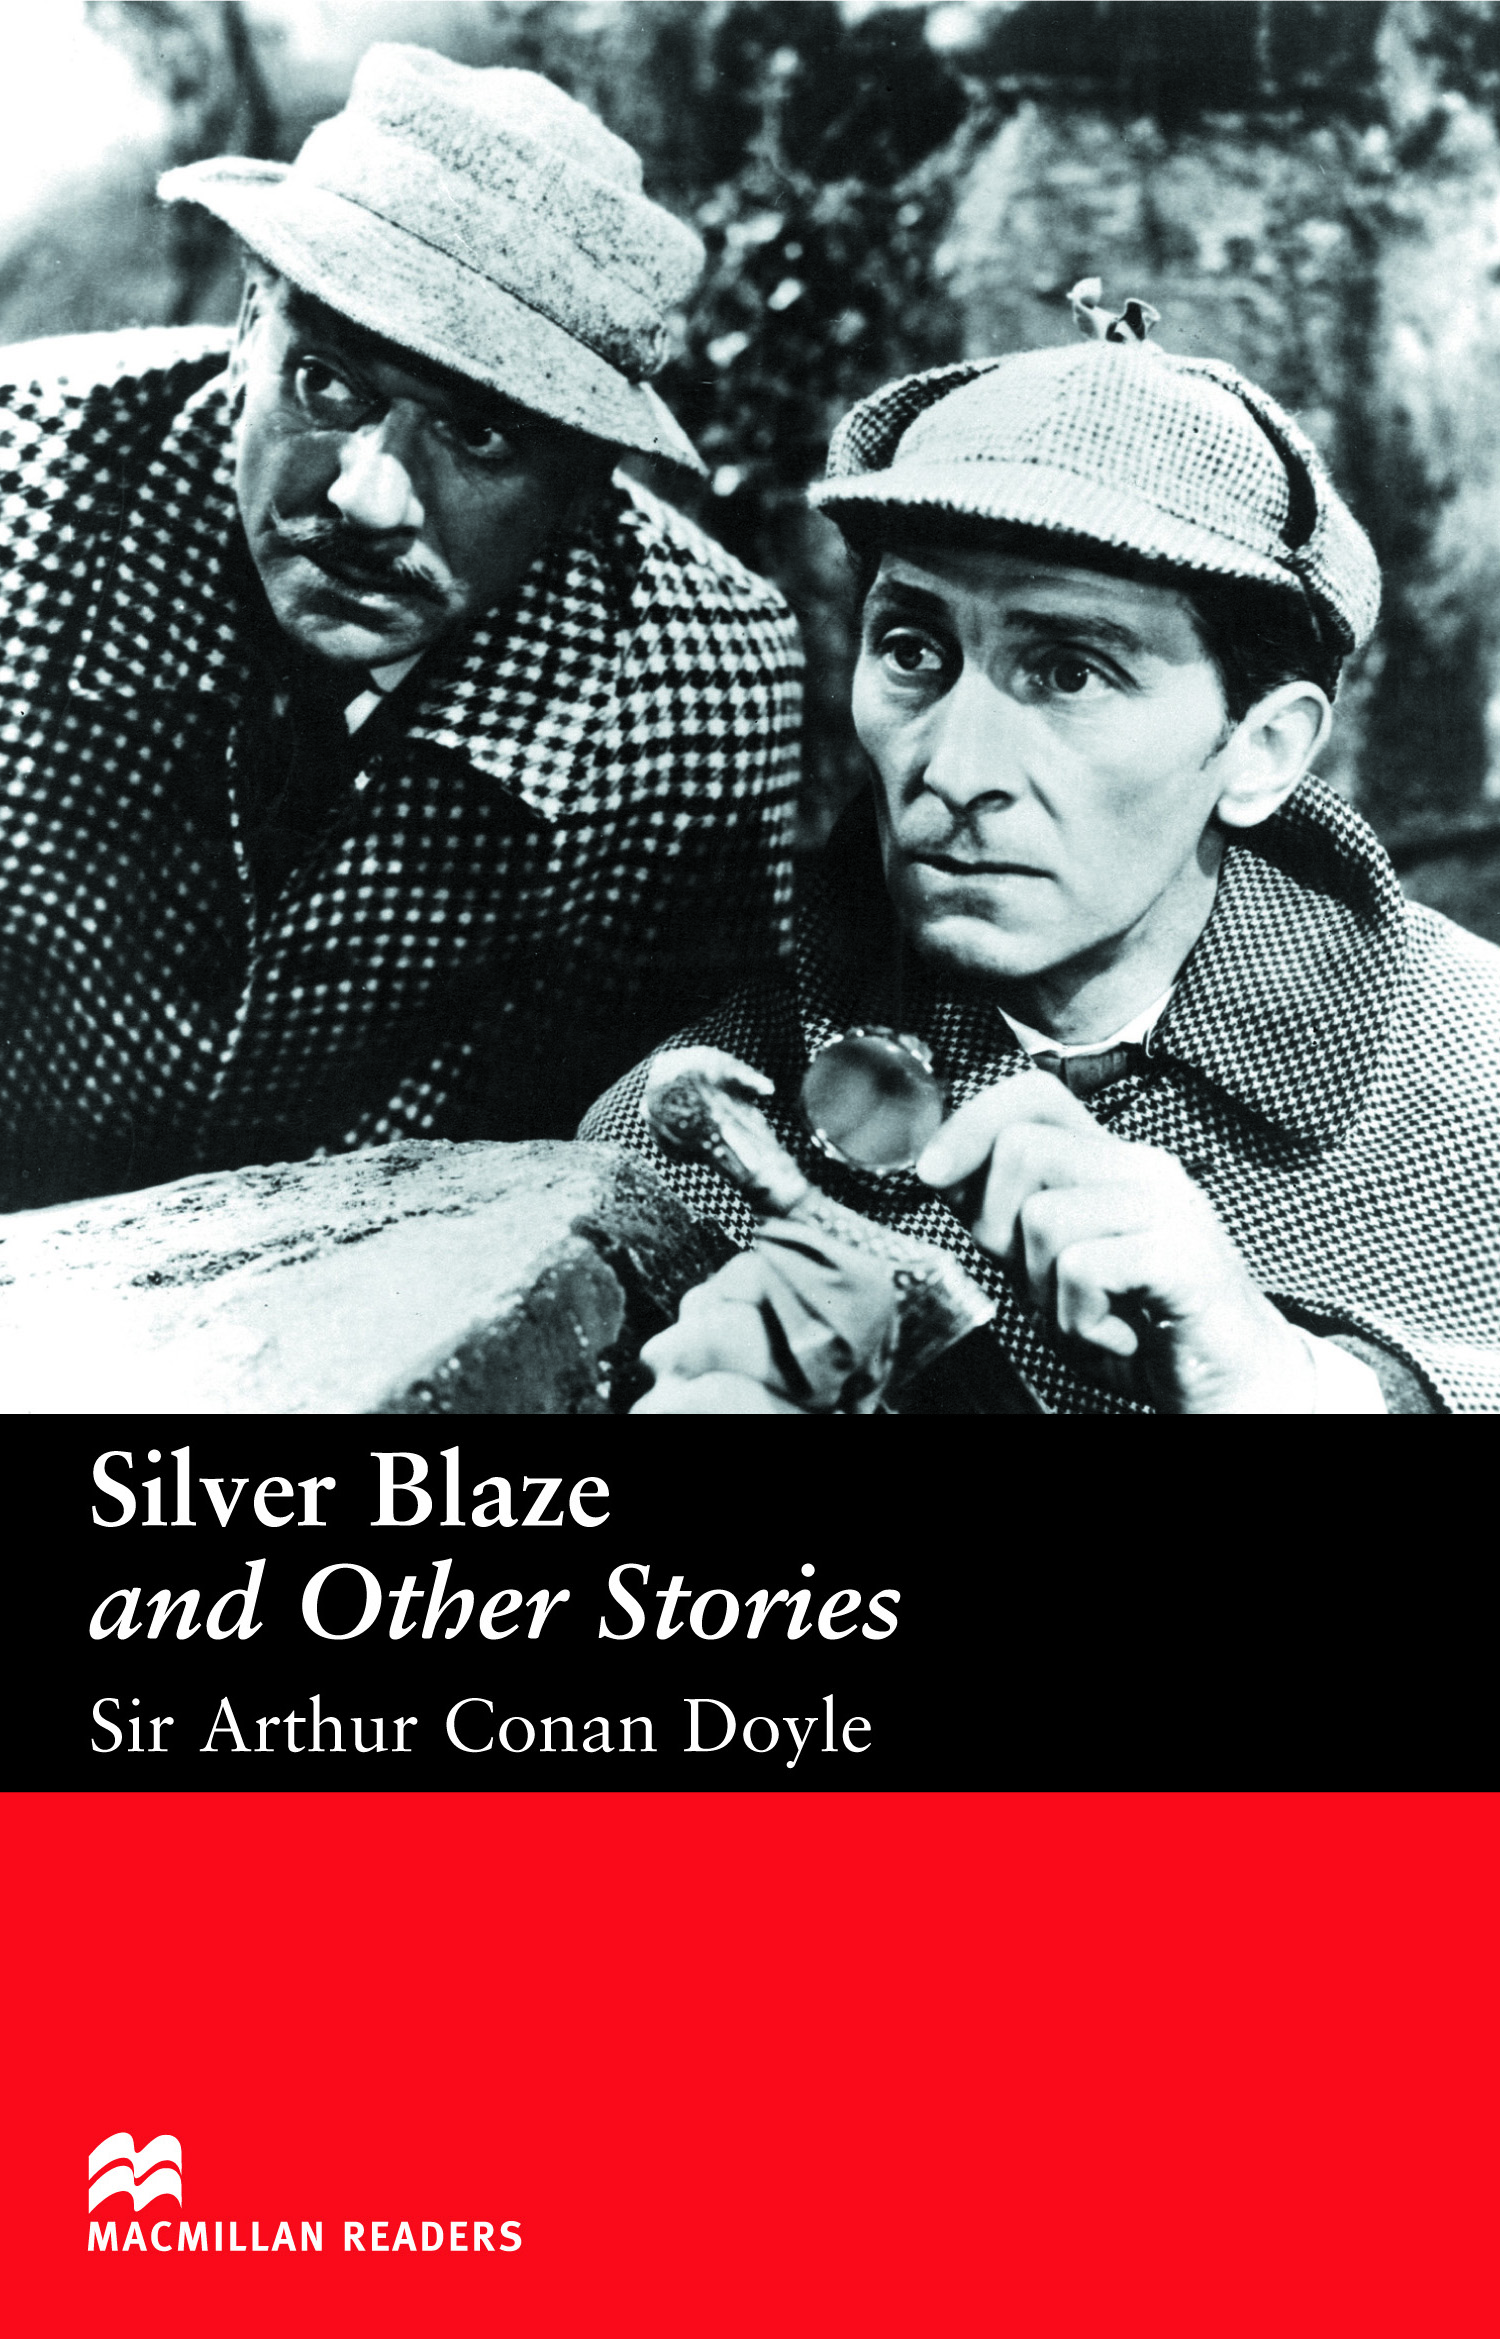 Macmillan Readers: Silver Blaze and Other Stories